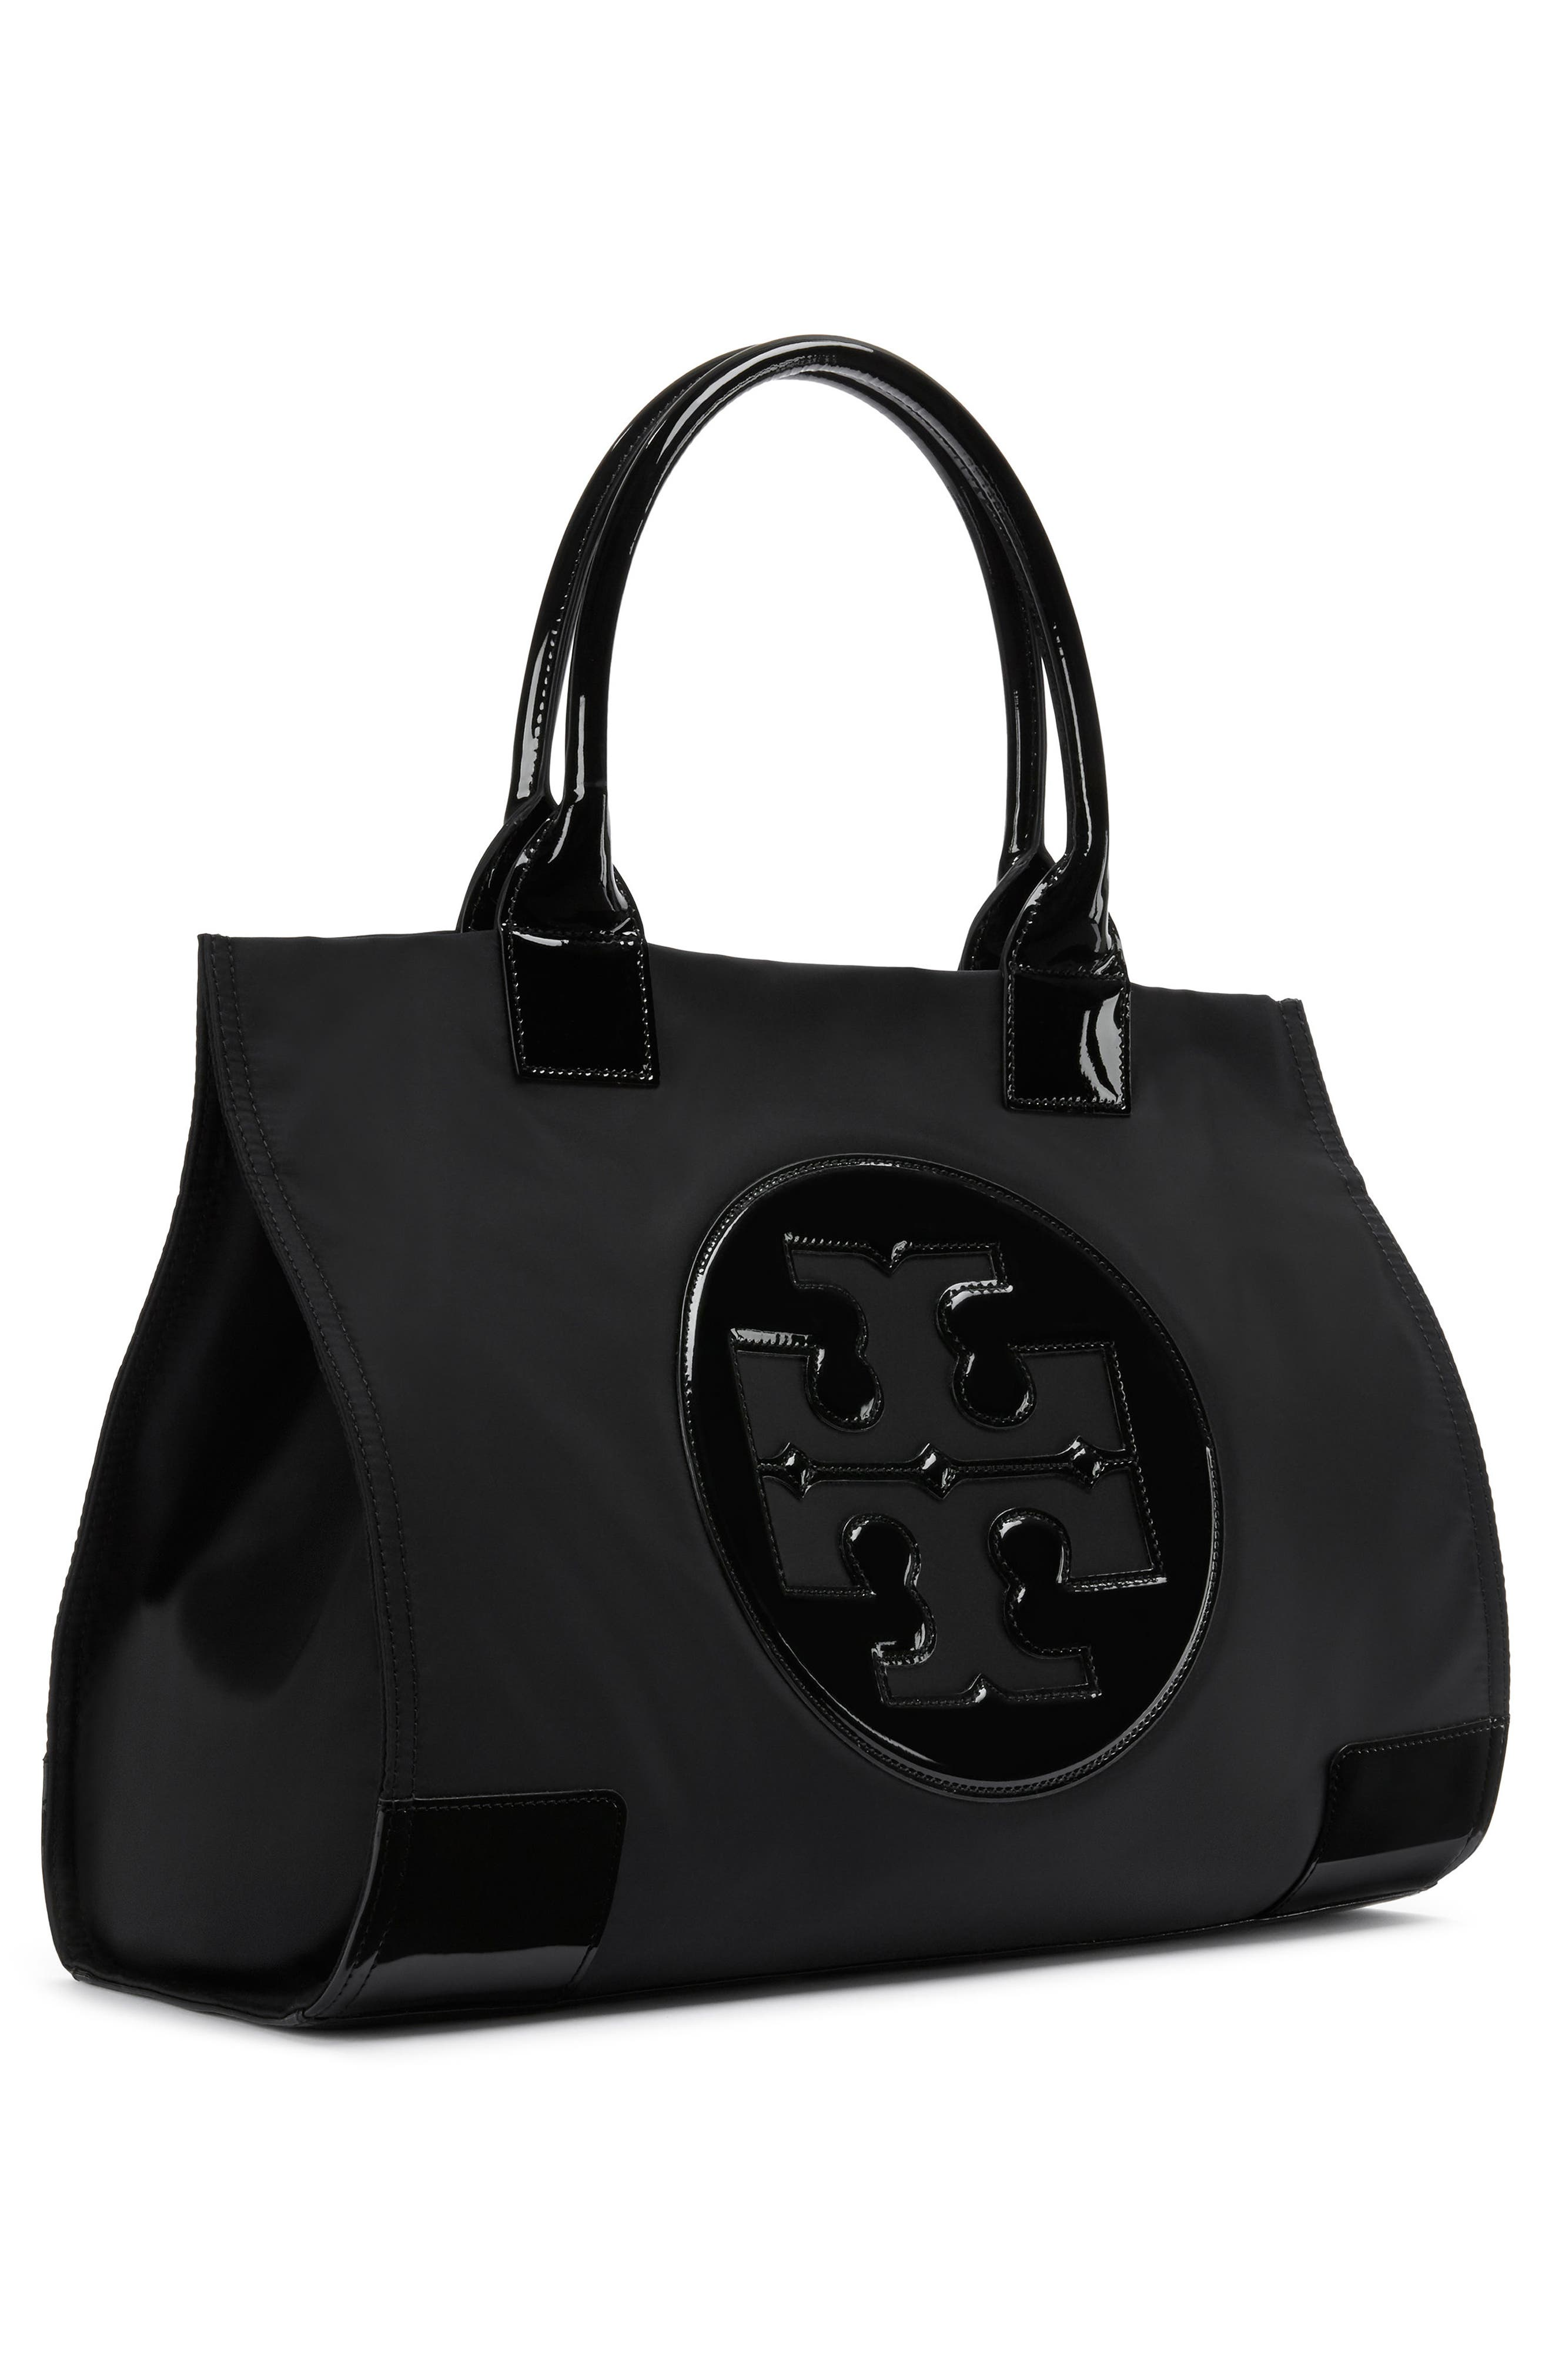 TORY BURCH, 'Ella' Nylon Tote, Alternate thumbnail 4, color, 001